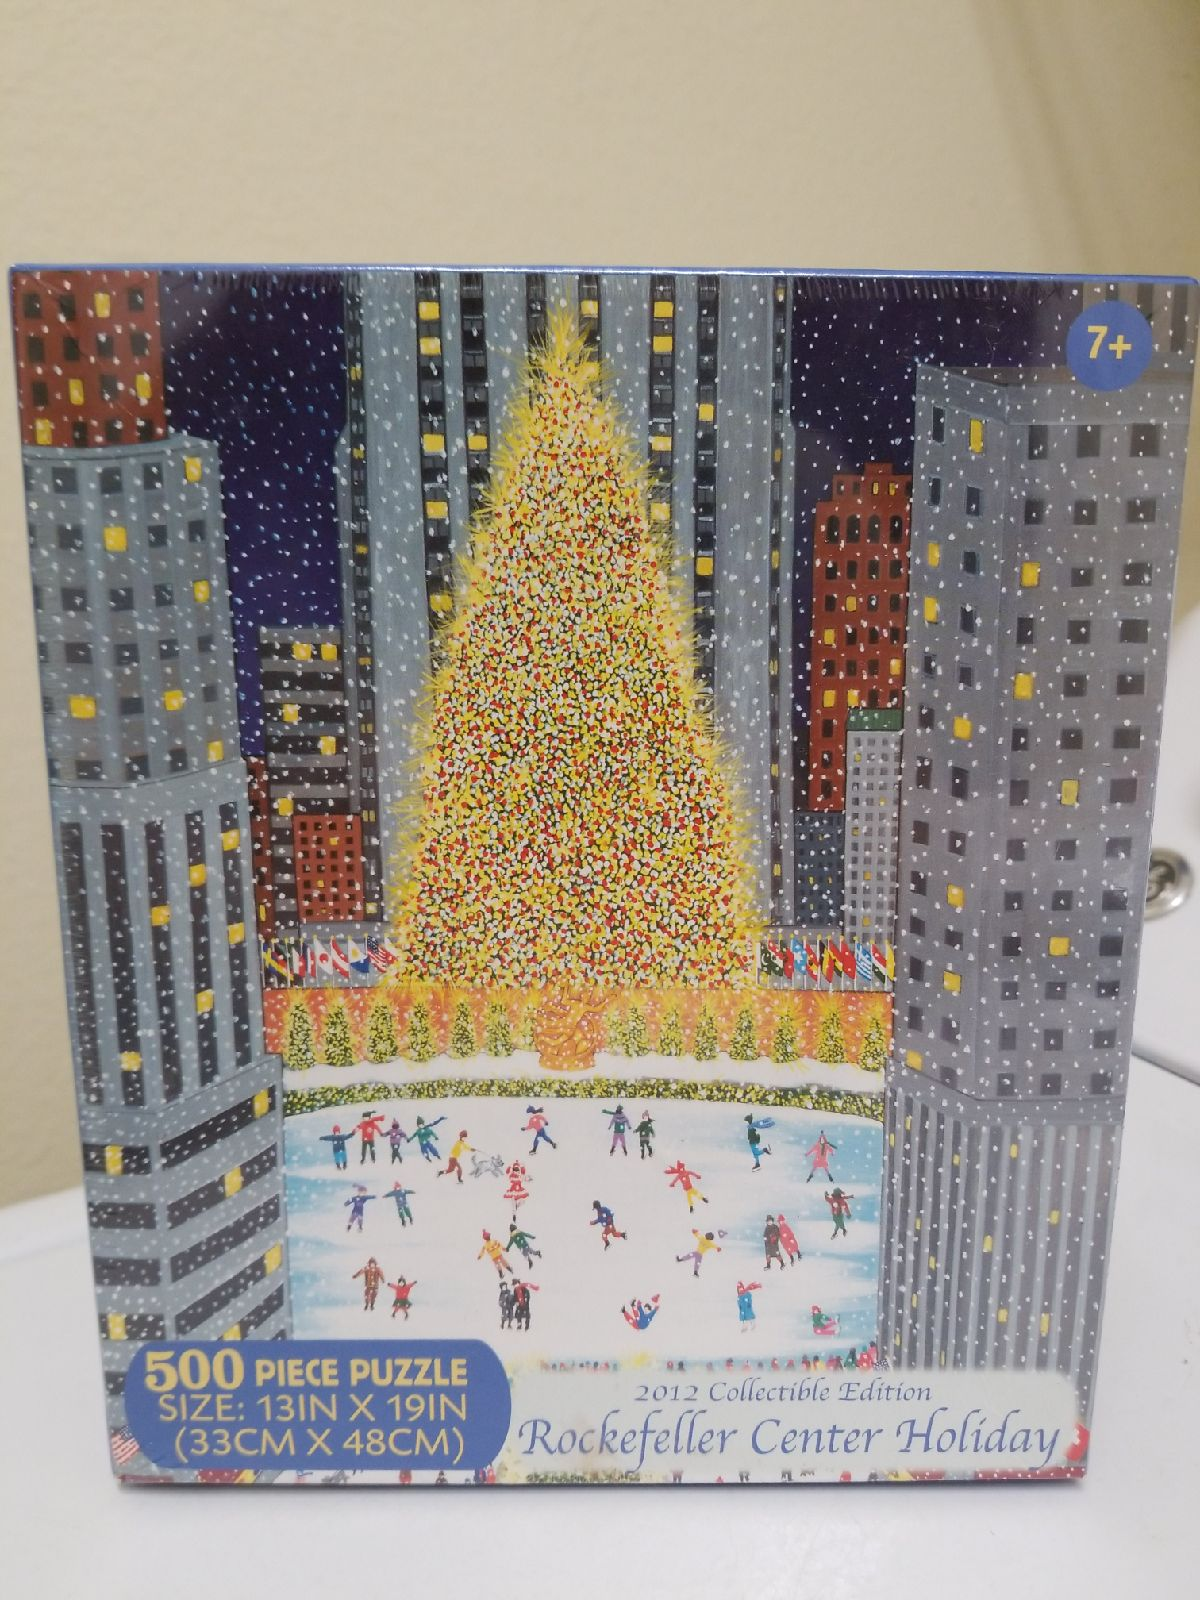 Rockefeller Center Holiday Puzzle